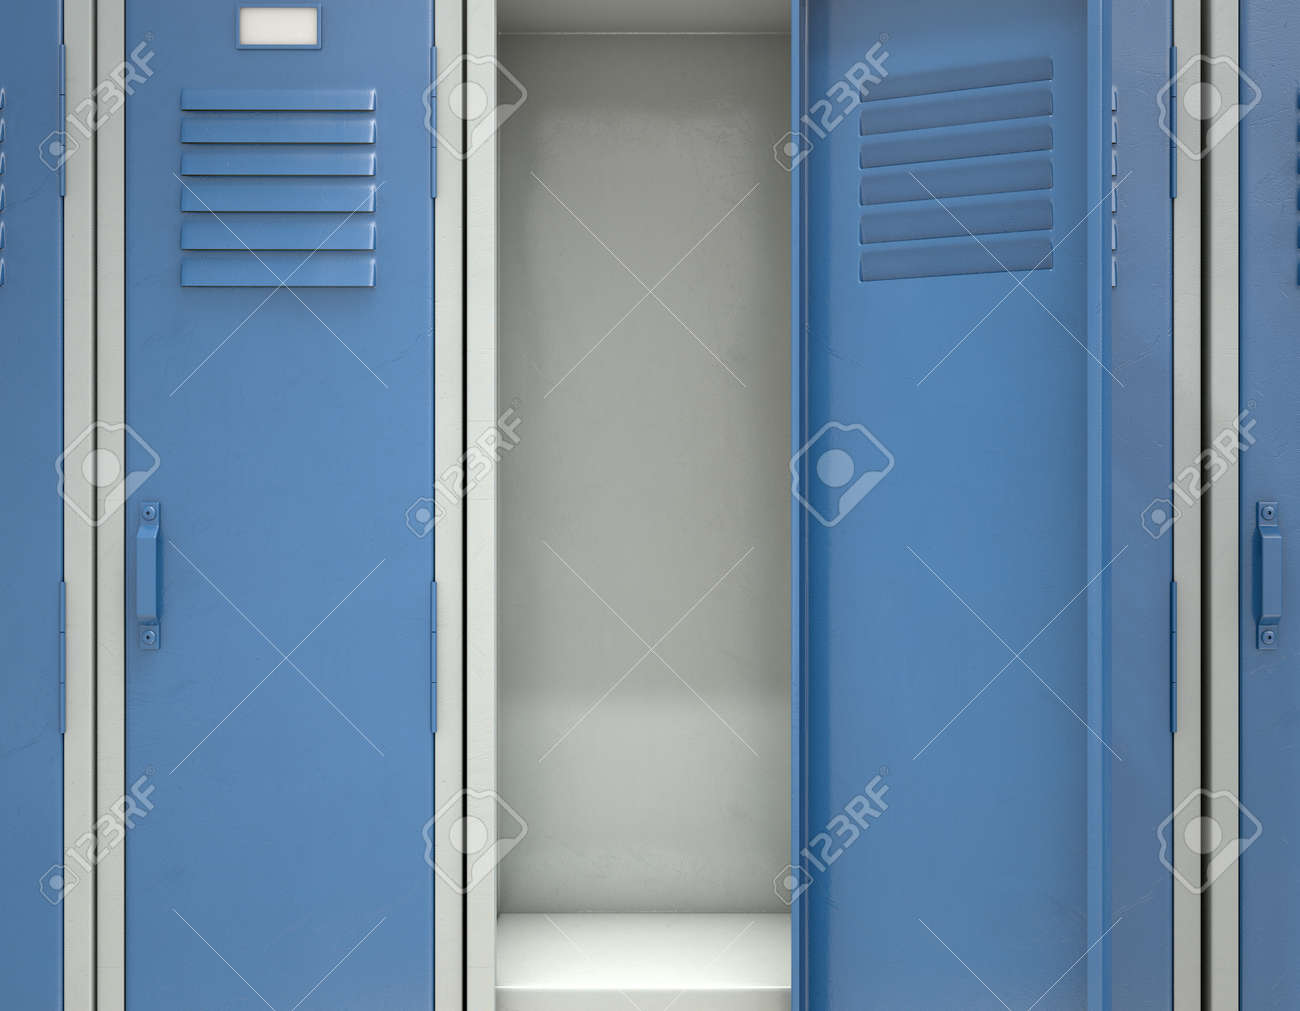 A Row Of Blue Metal School Lockers With One Open Door Revealing Stock Photo Picture And Royalty Free Image Image 95061810